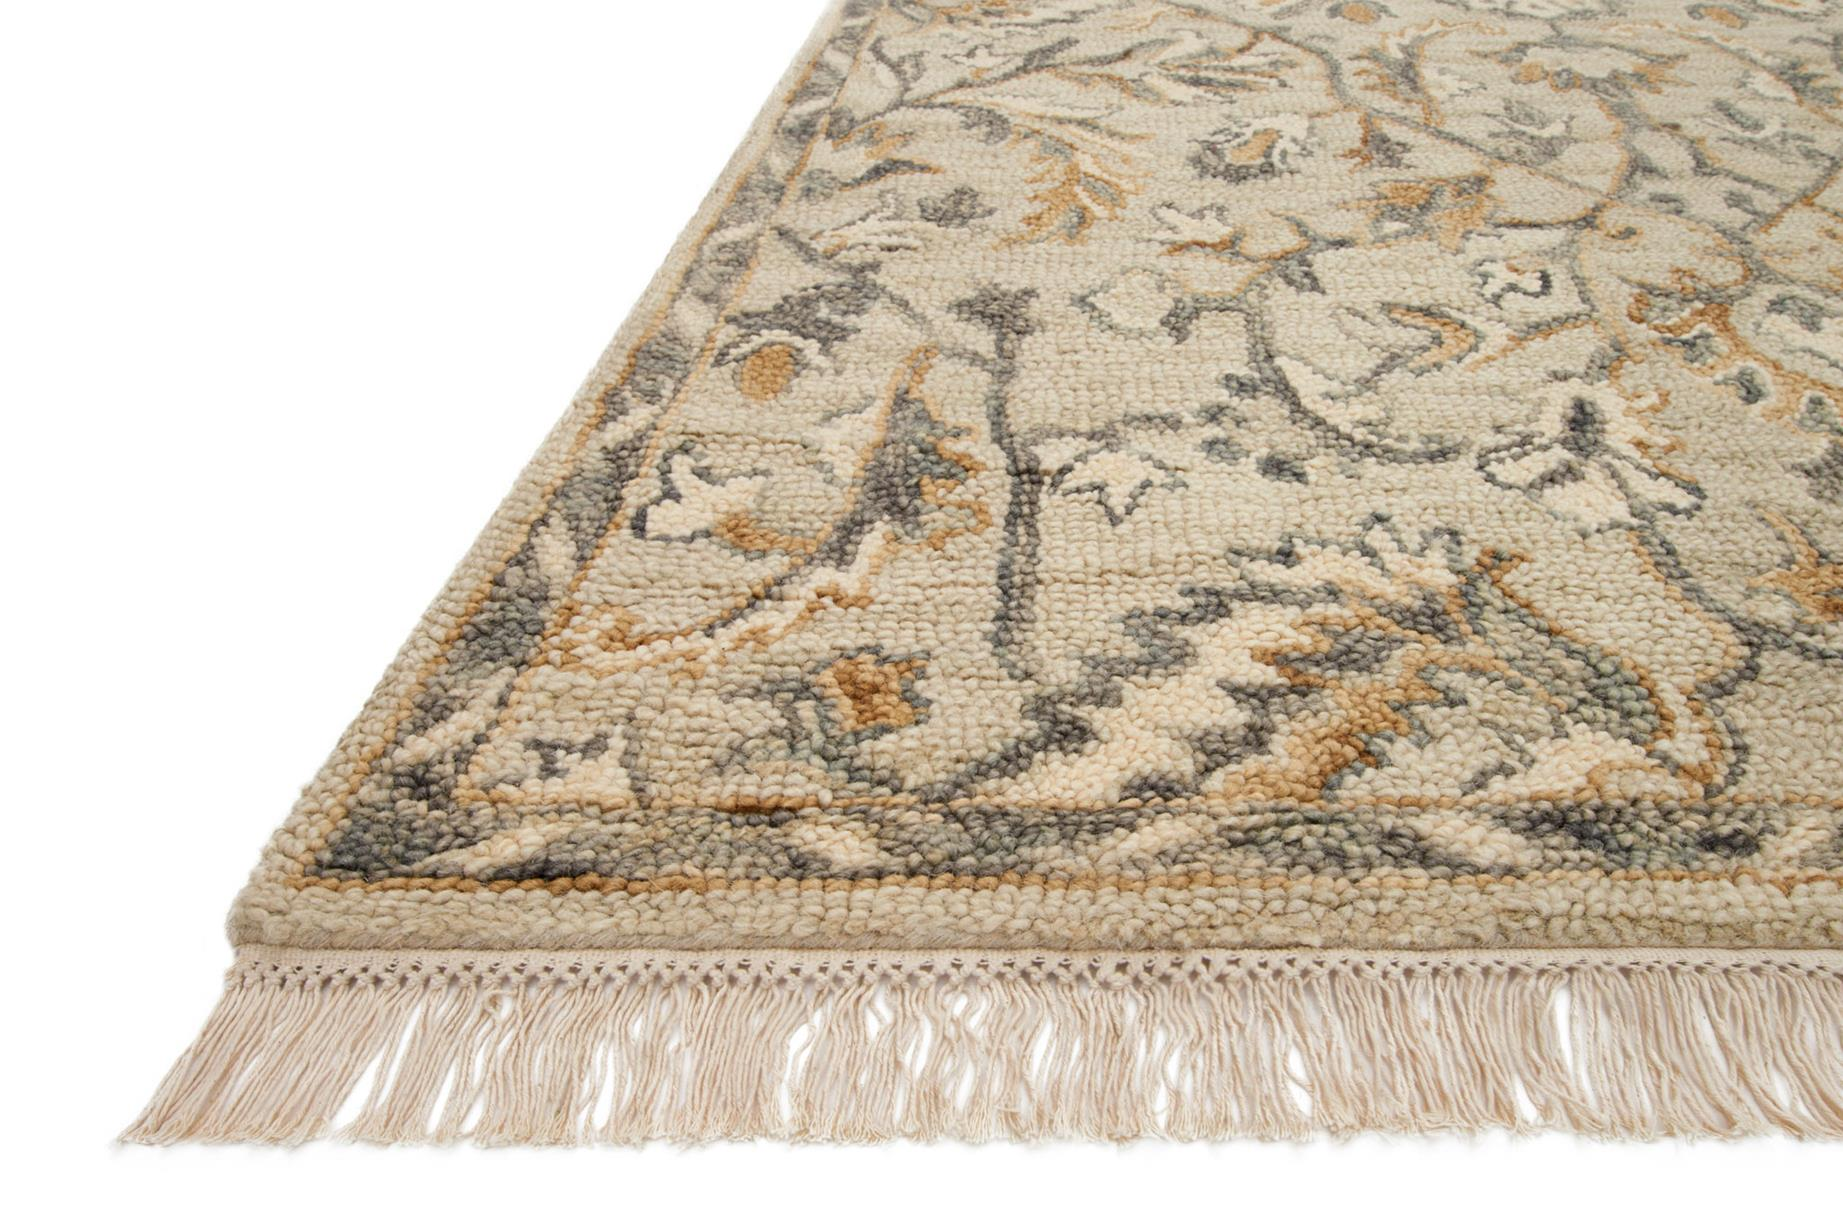 the area joanna starts magnolia tf available home with and pin by gaines retailers good room tulum on blue a magnoliamarket now com rug rugs